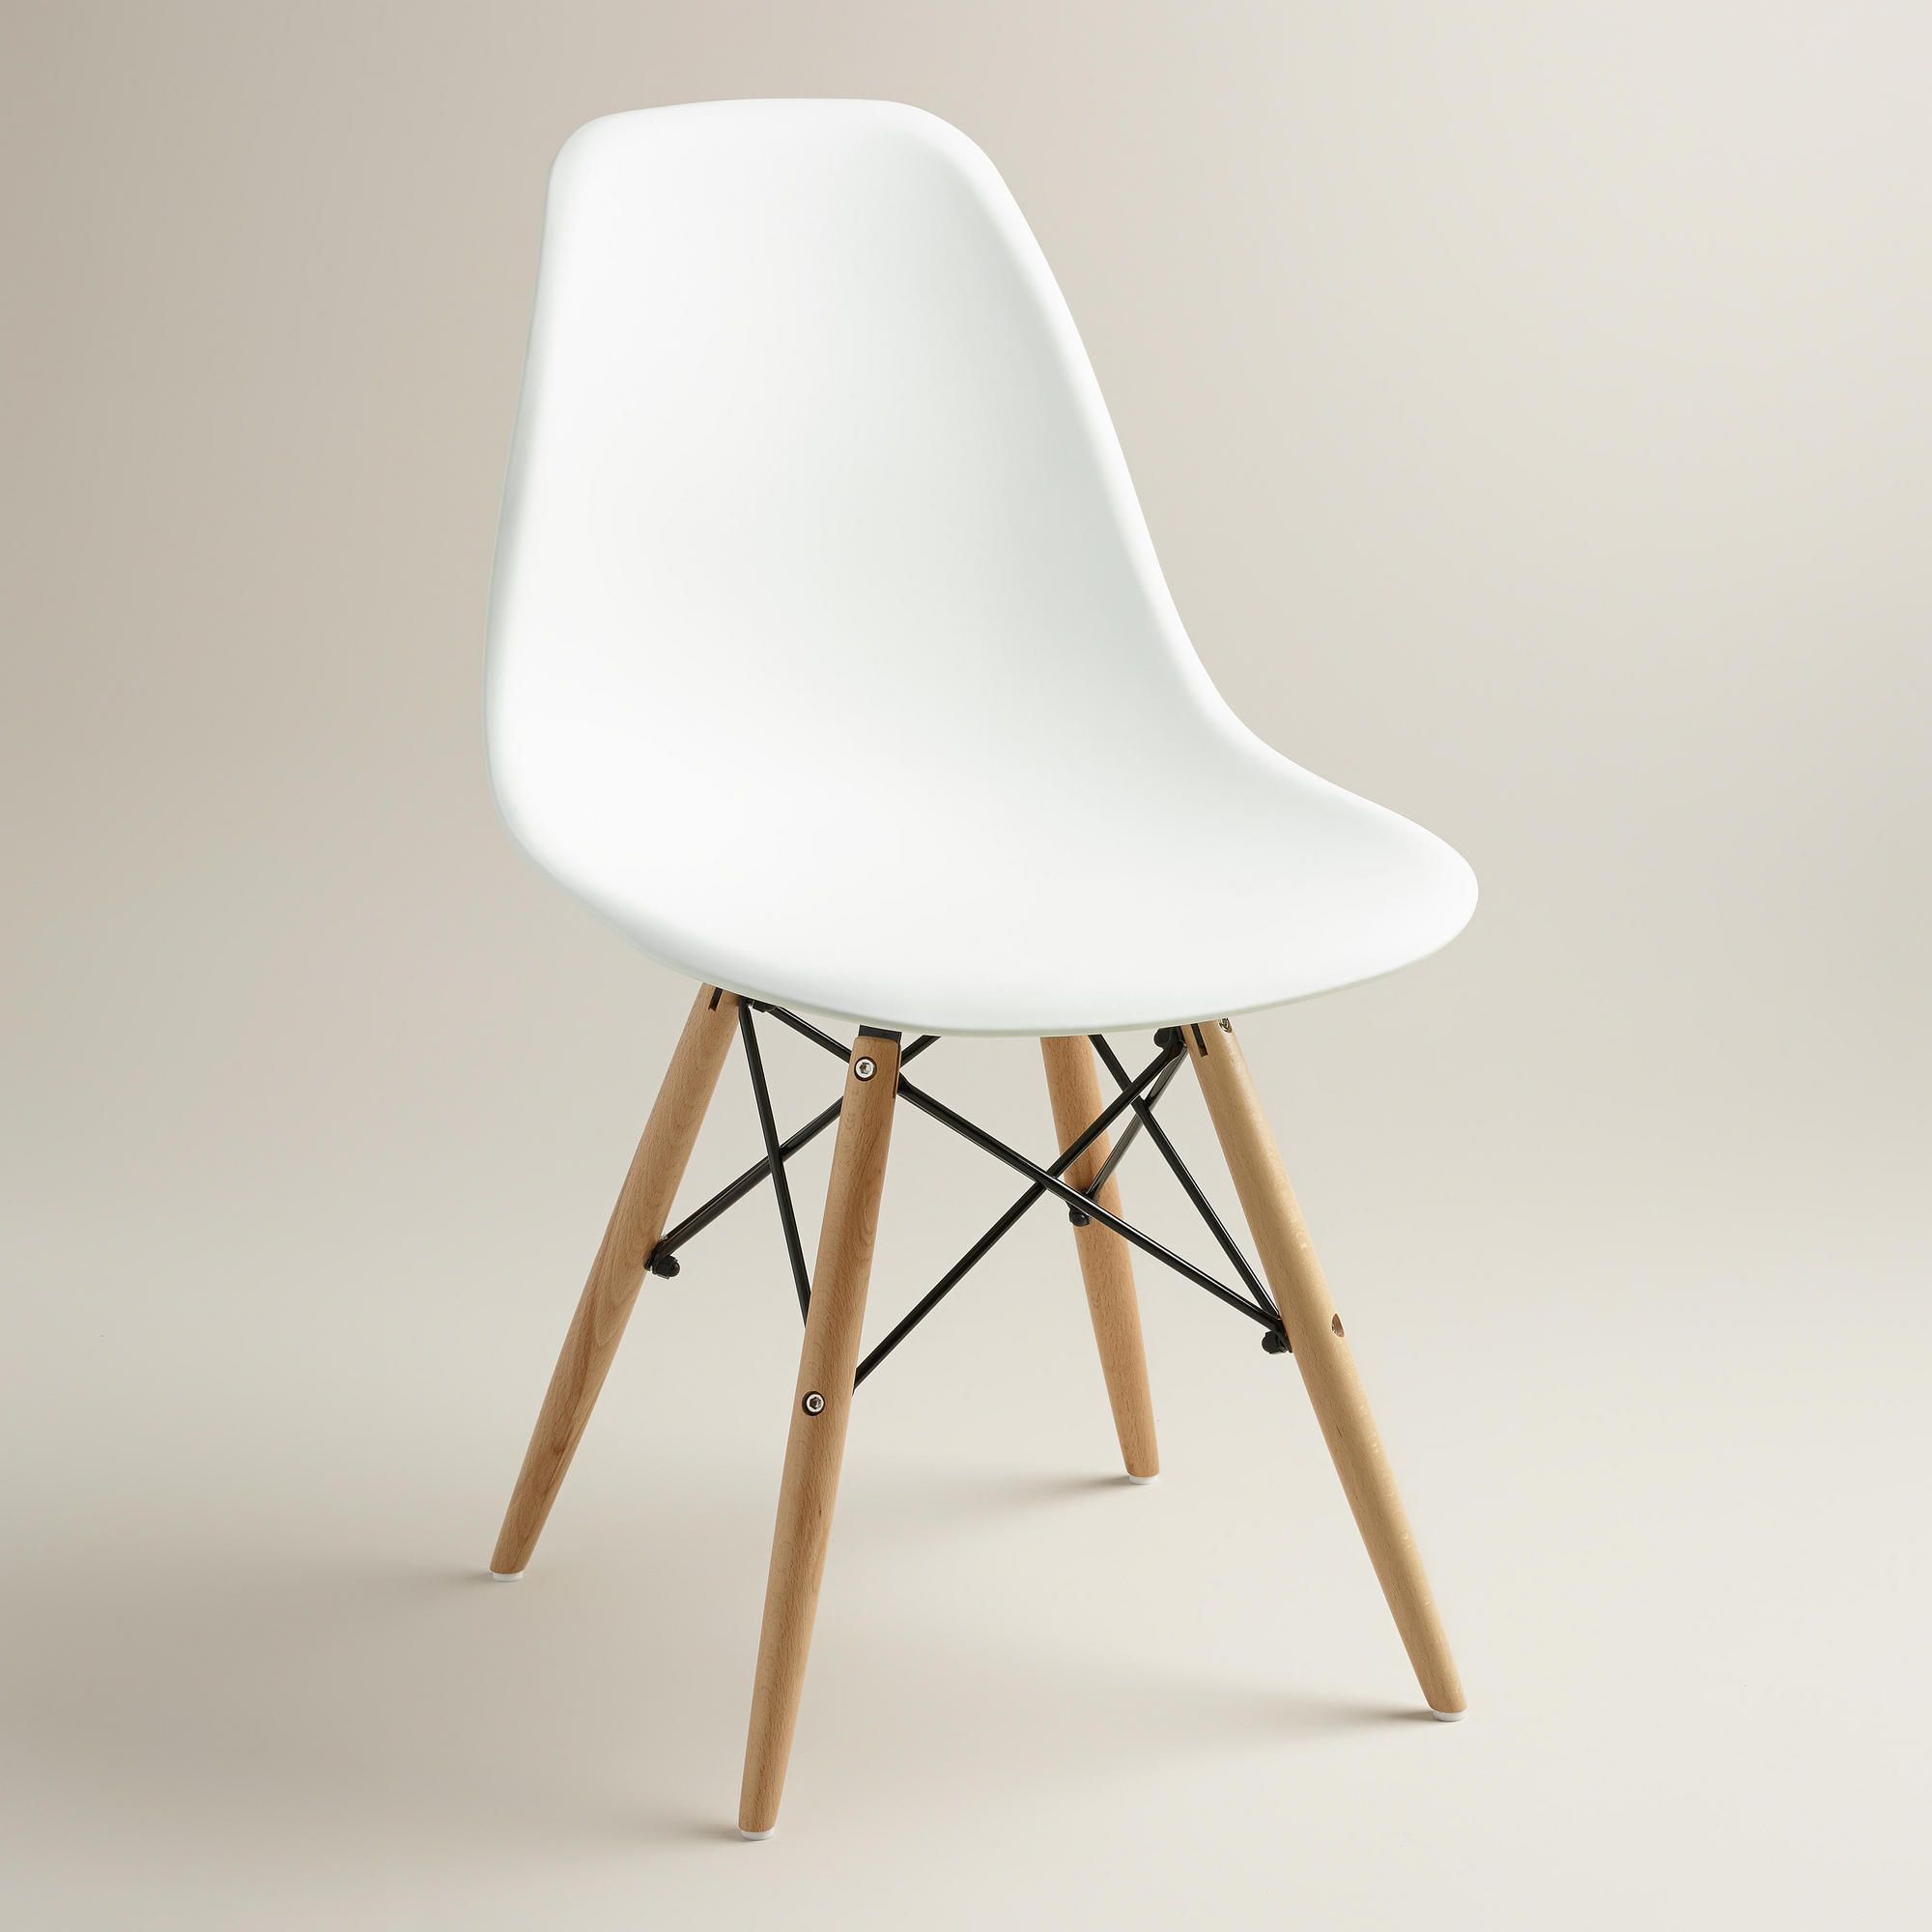 White Molded Evie Chairs, Set of 2 World Market 139.99